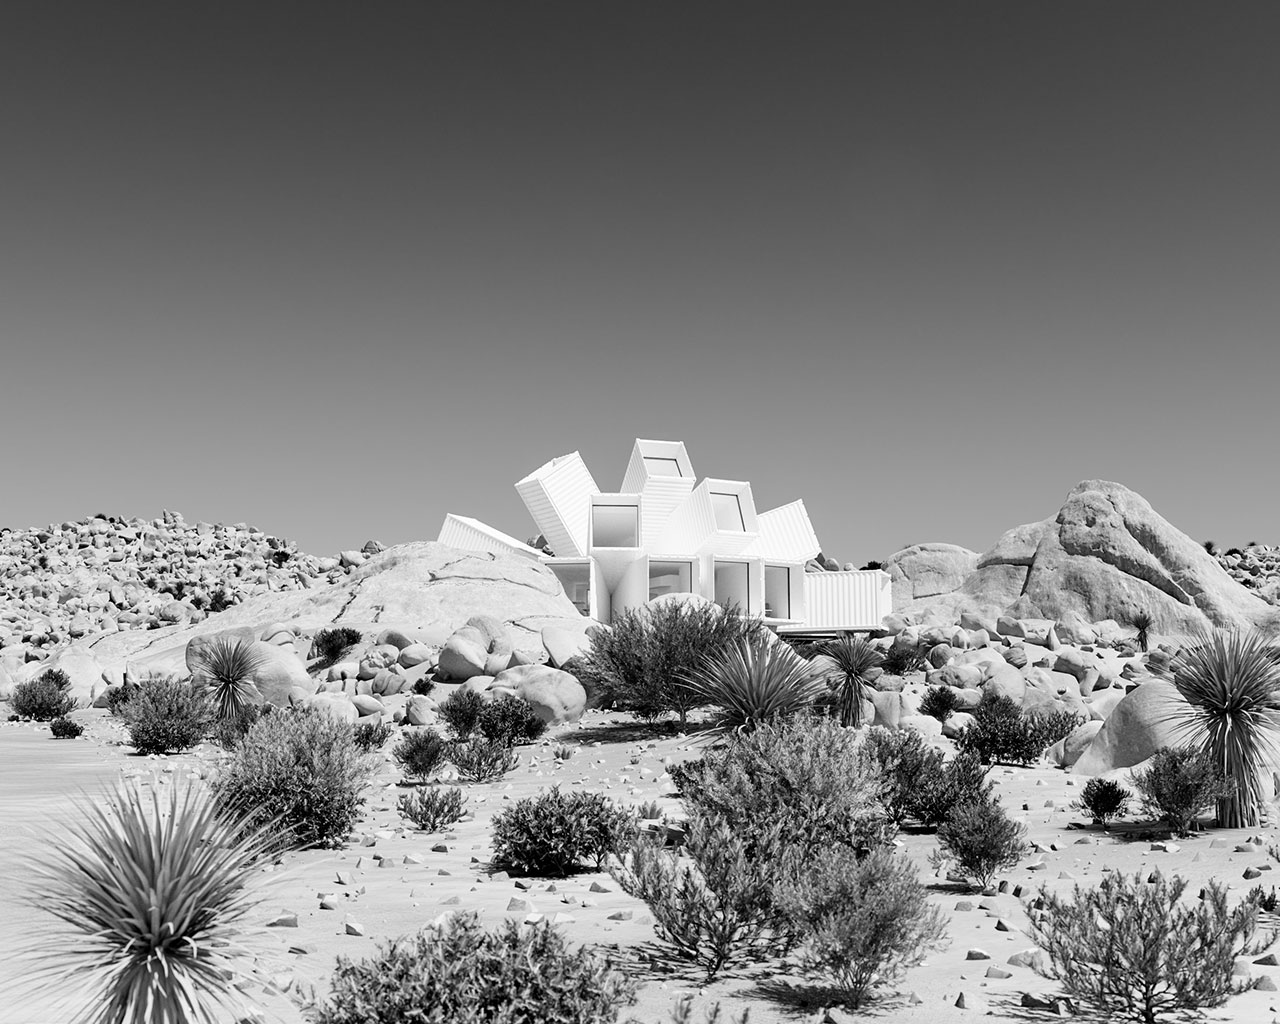 Screenshot of Whittaker Studio's Joshua Tree concept